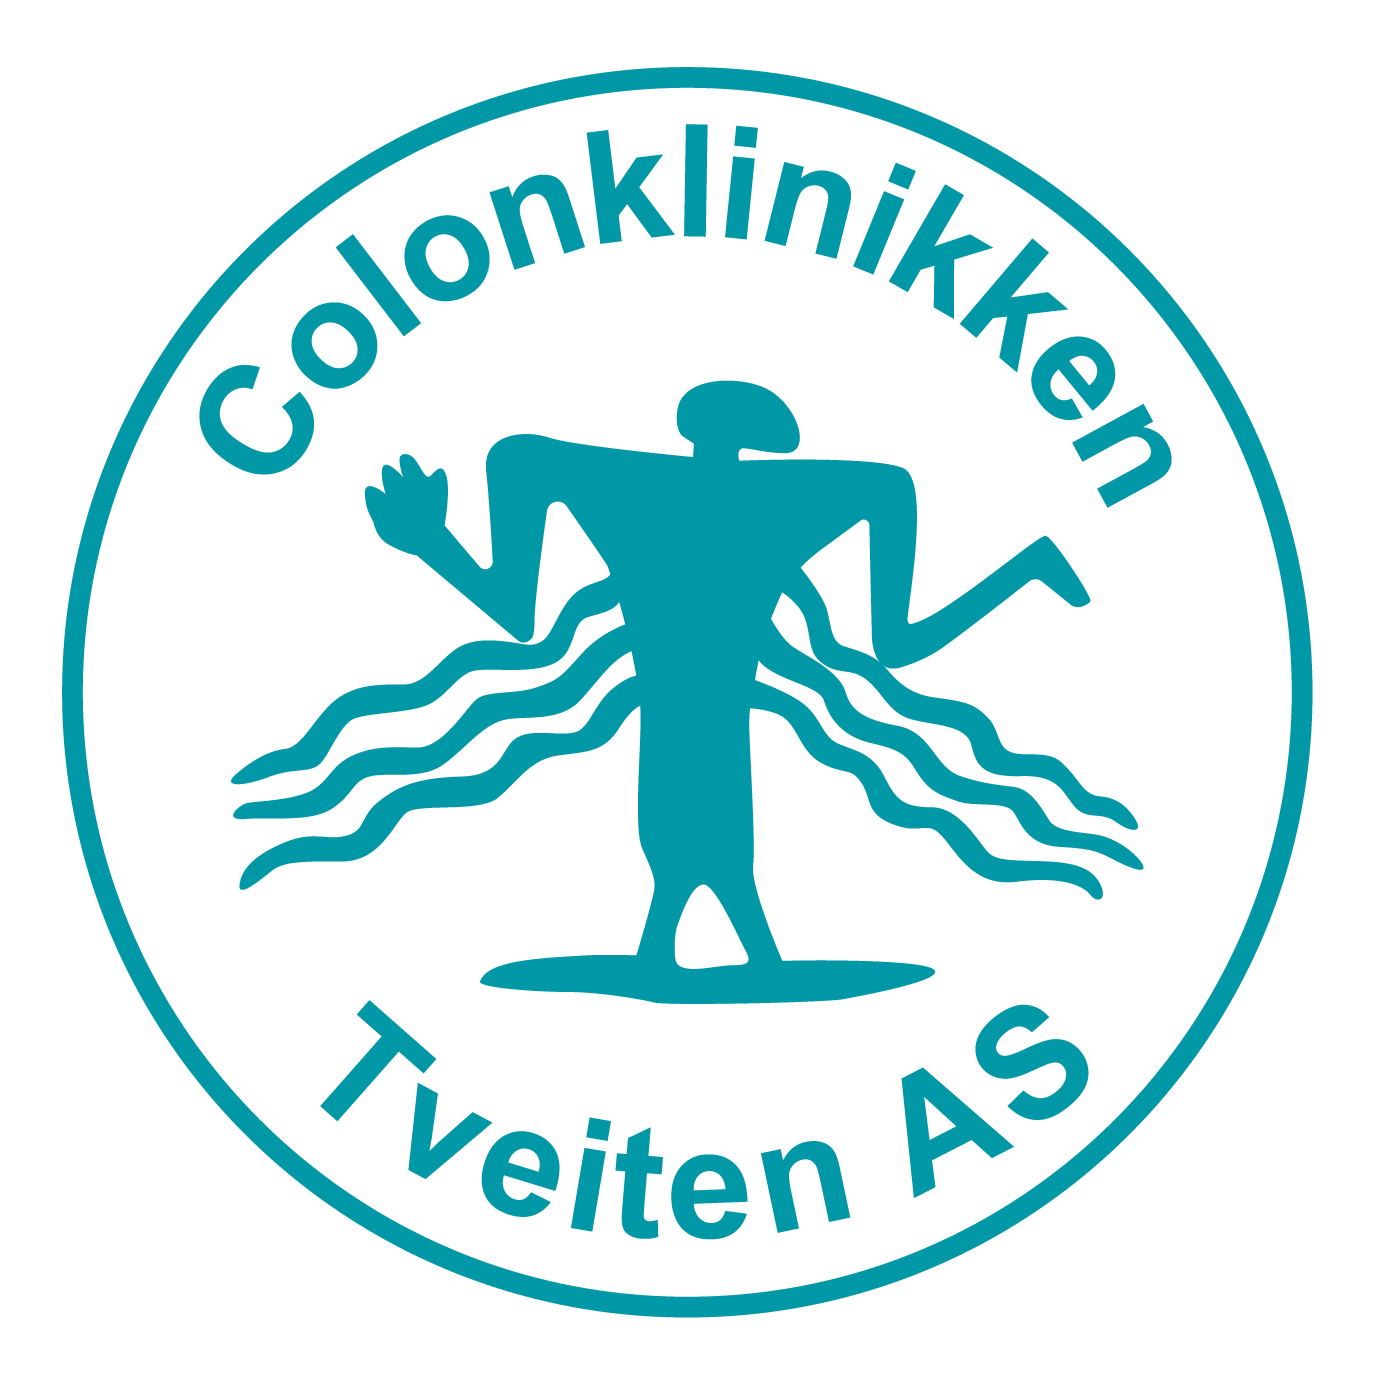 Colon Klinikken Tveitan AS